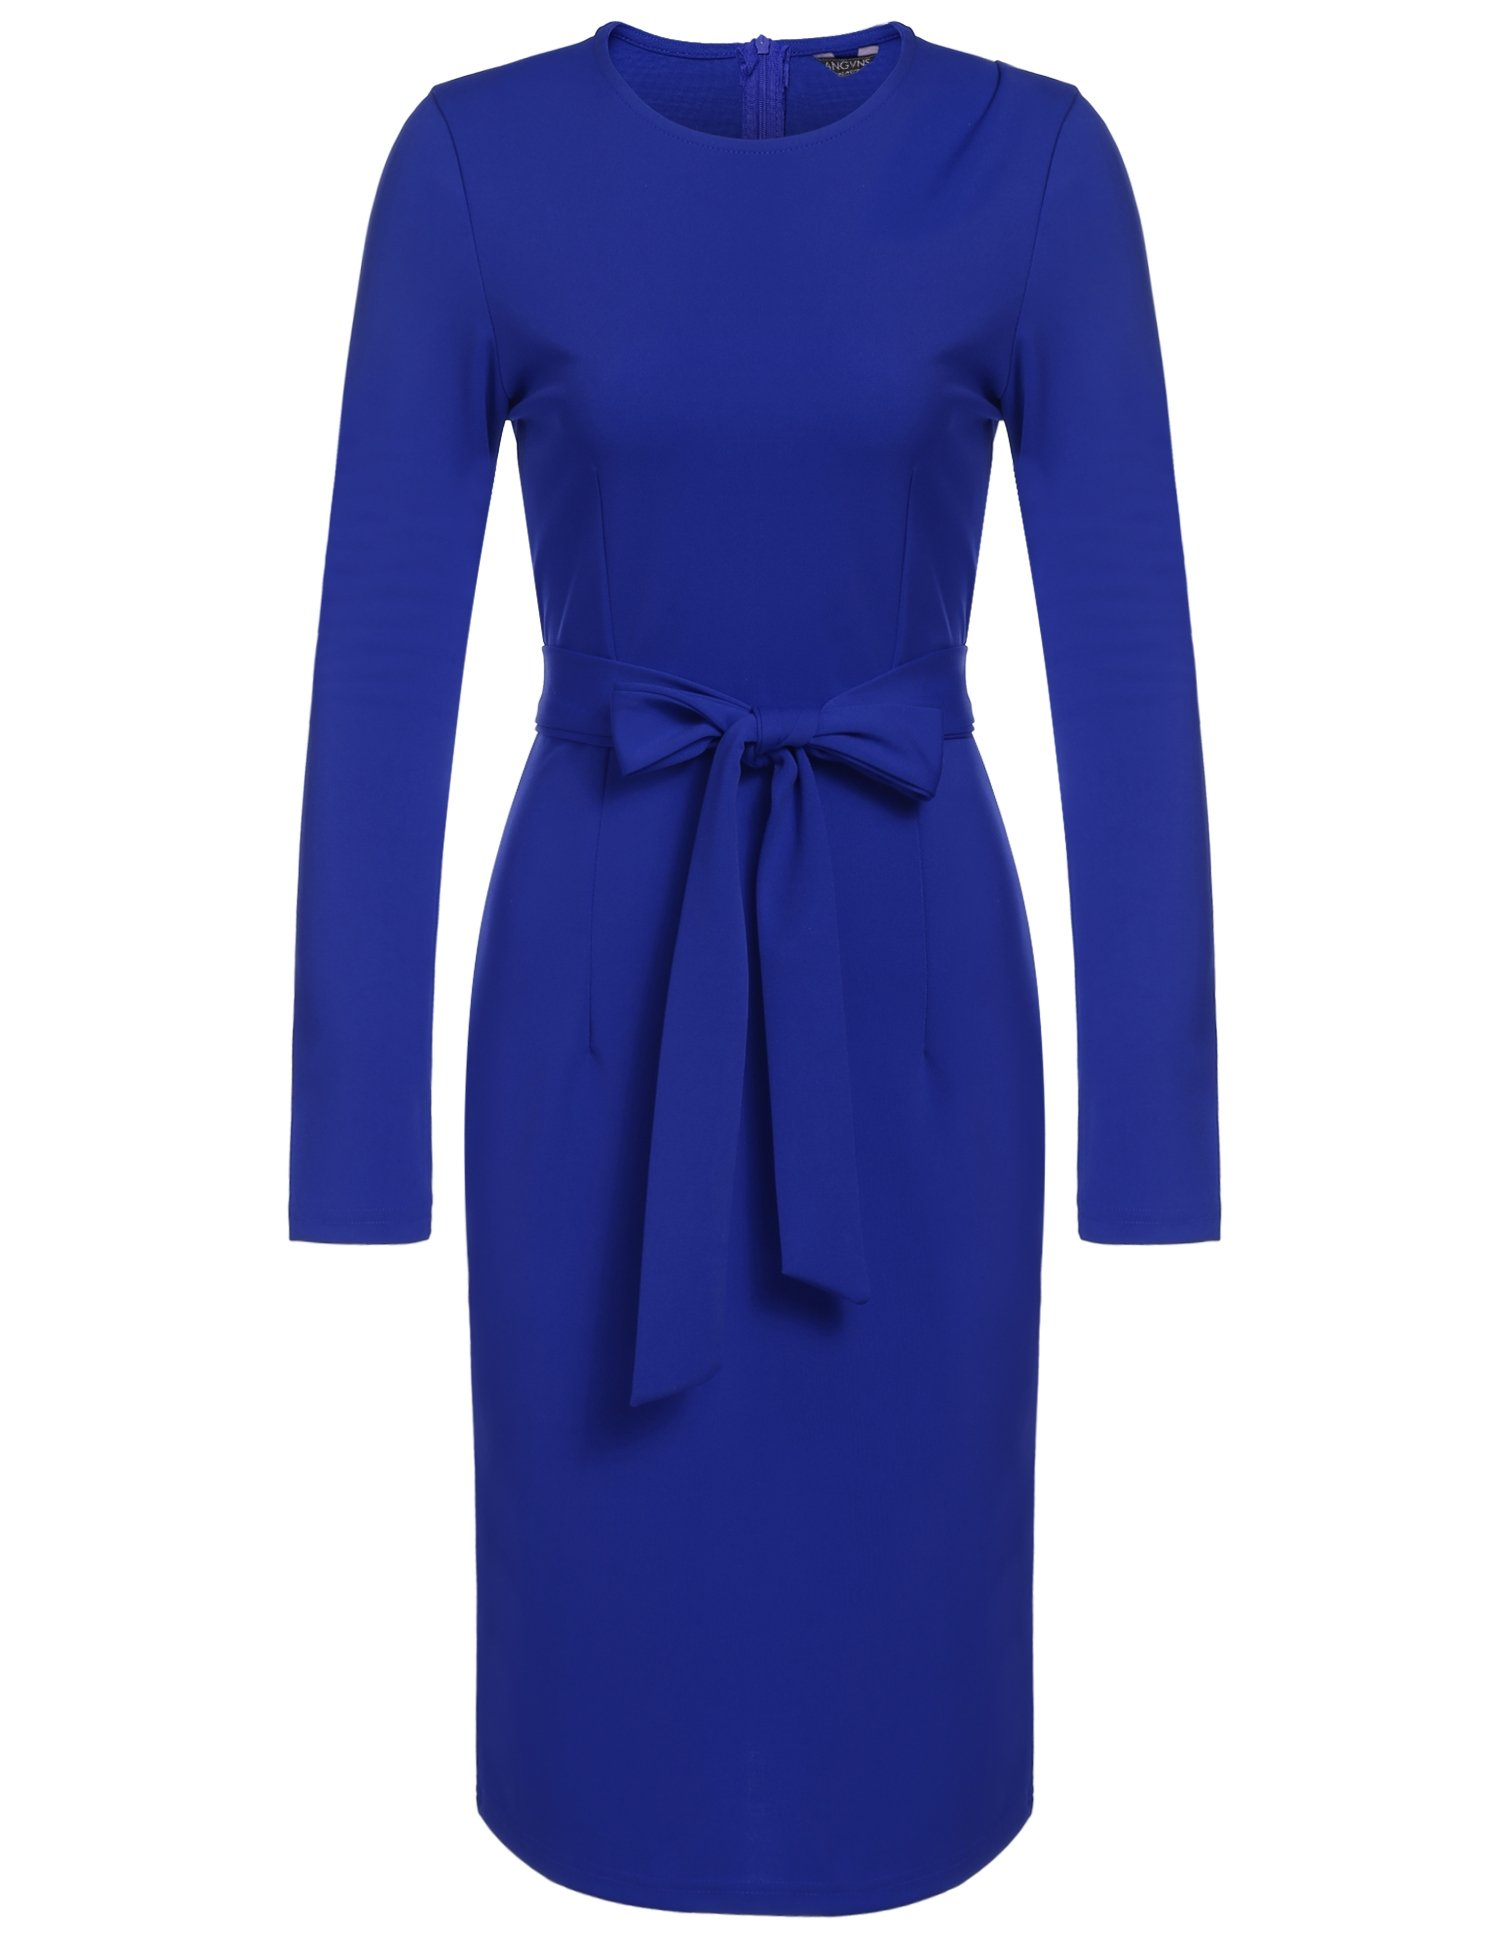 Available at Amazon: ANGVNS Women Long Sleeve Round Neck Cocktail Pencil Dress with Belt